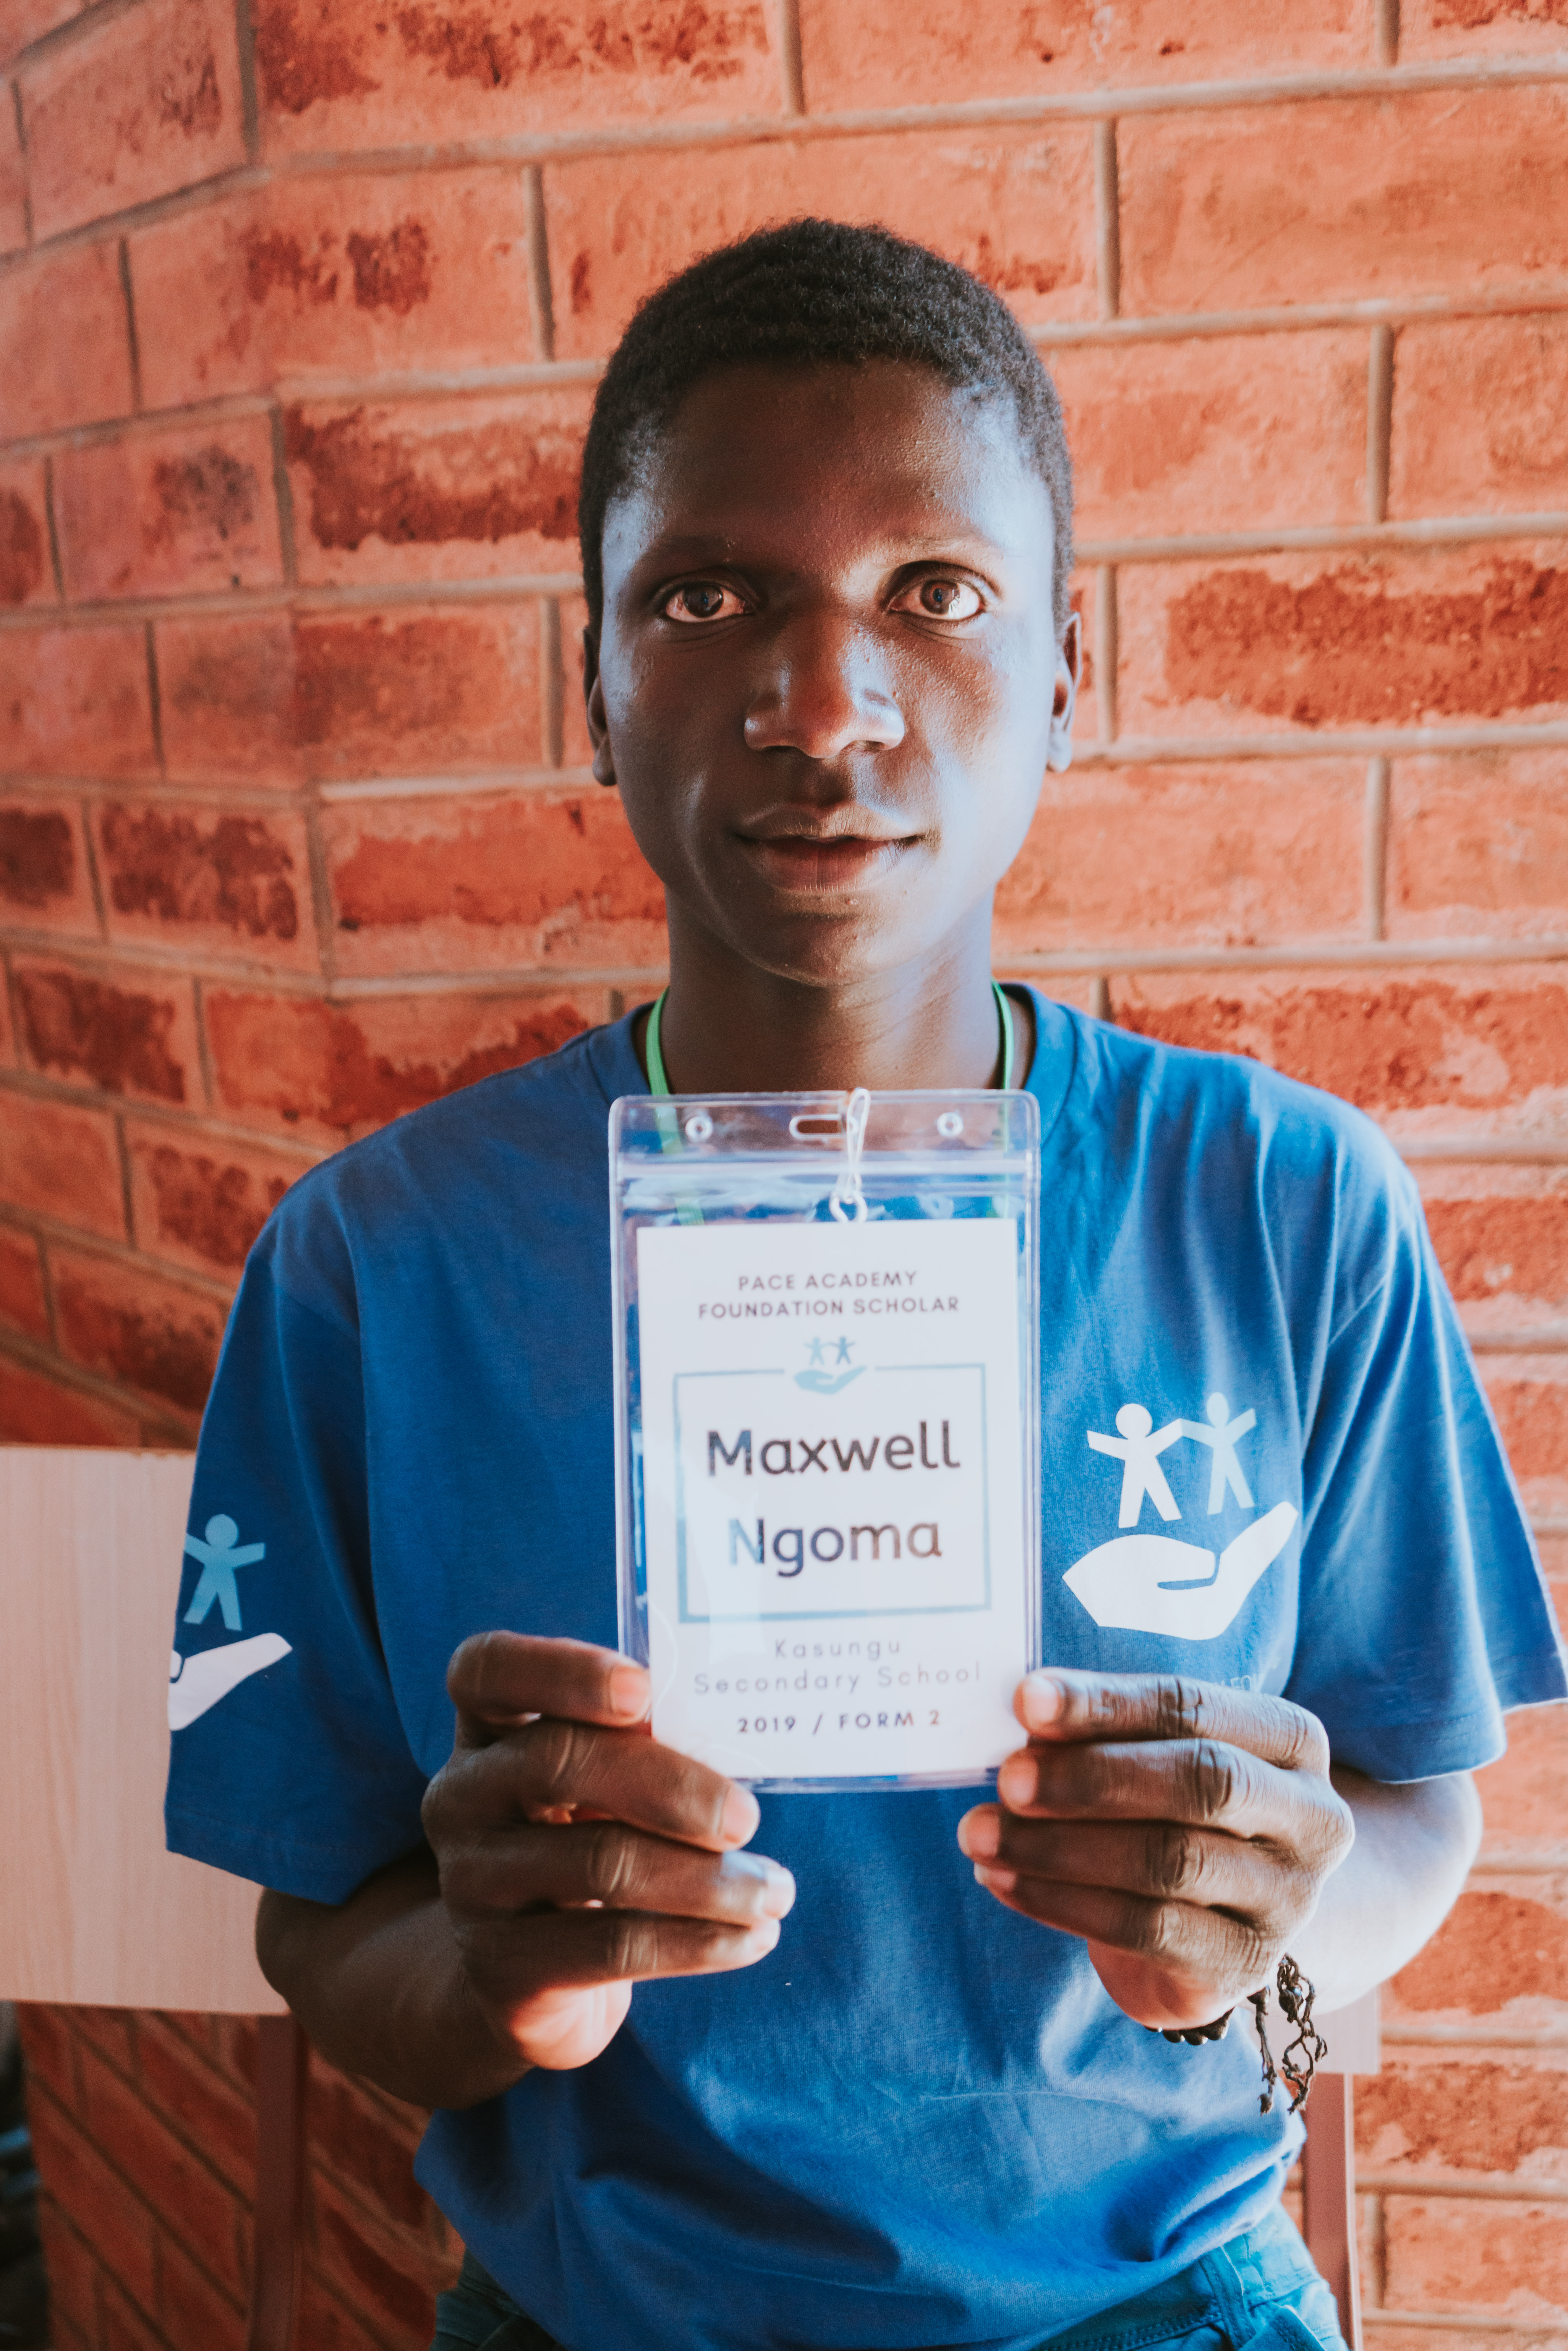 Maxwell Ngoma (Kasungu Secondary School)